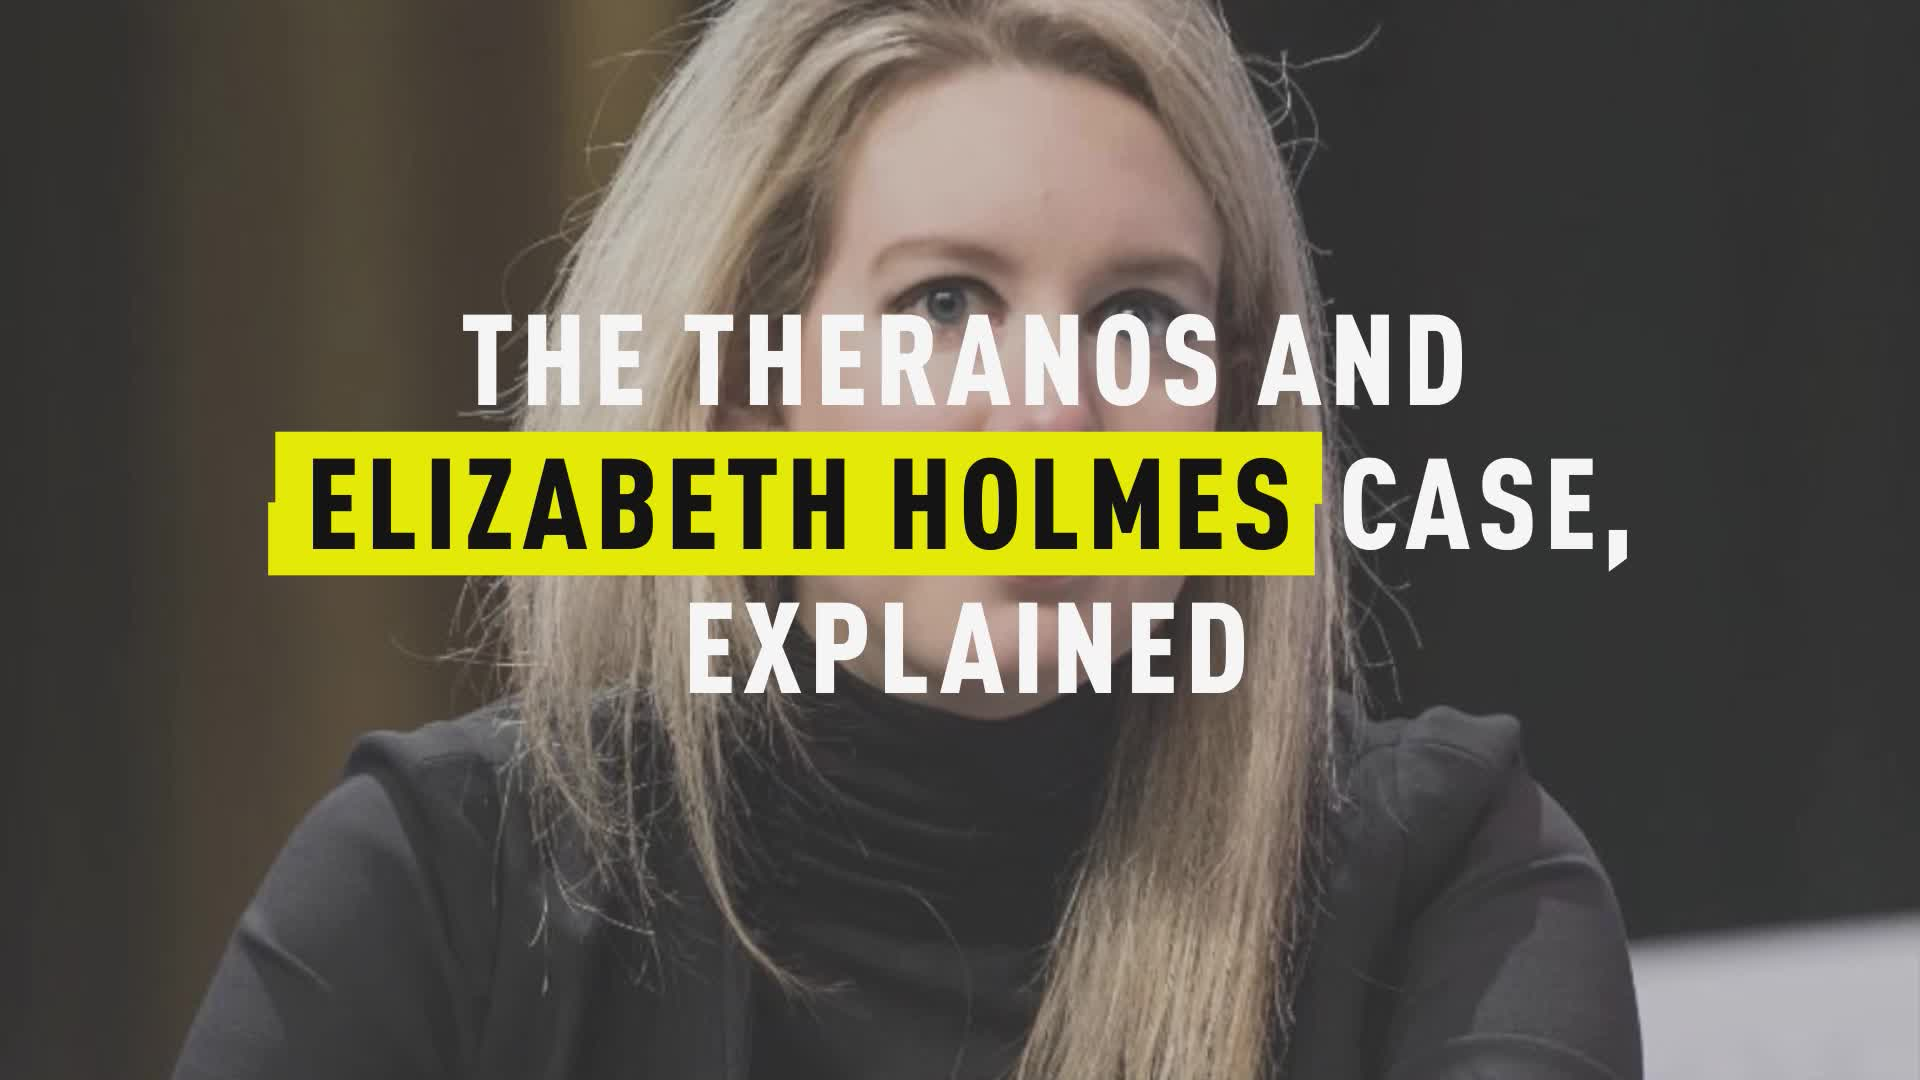 The Theranos and Elizabeth Holmes Case, Explained